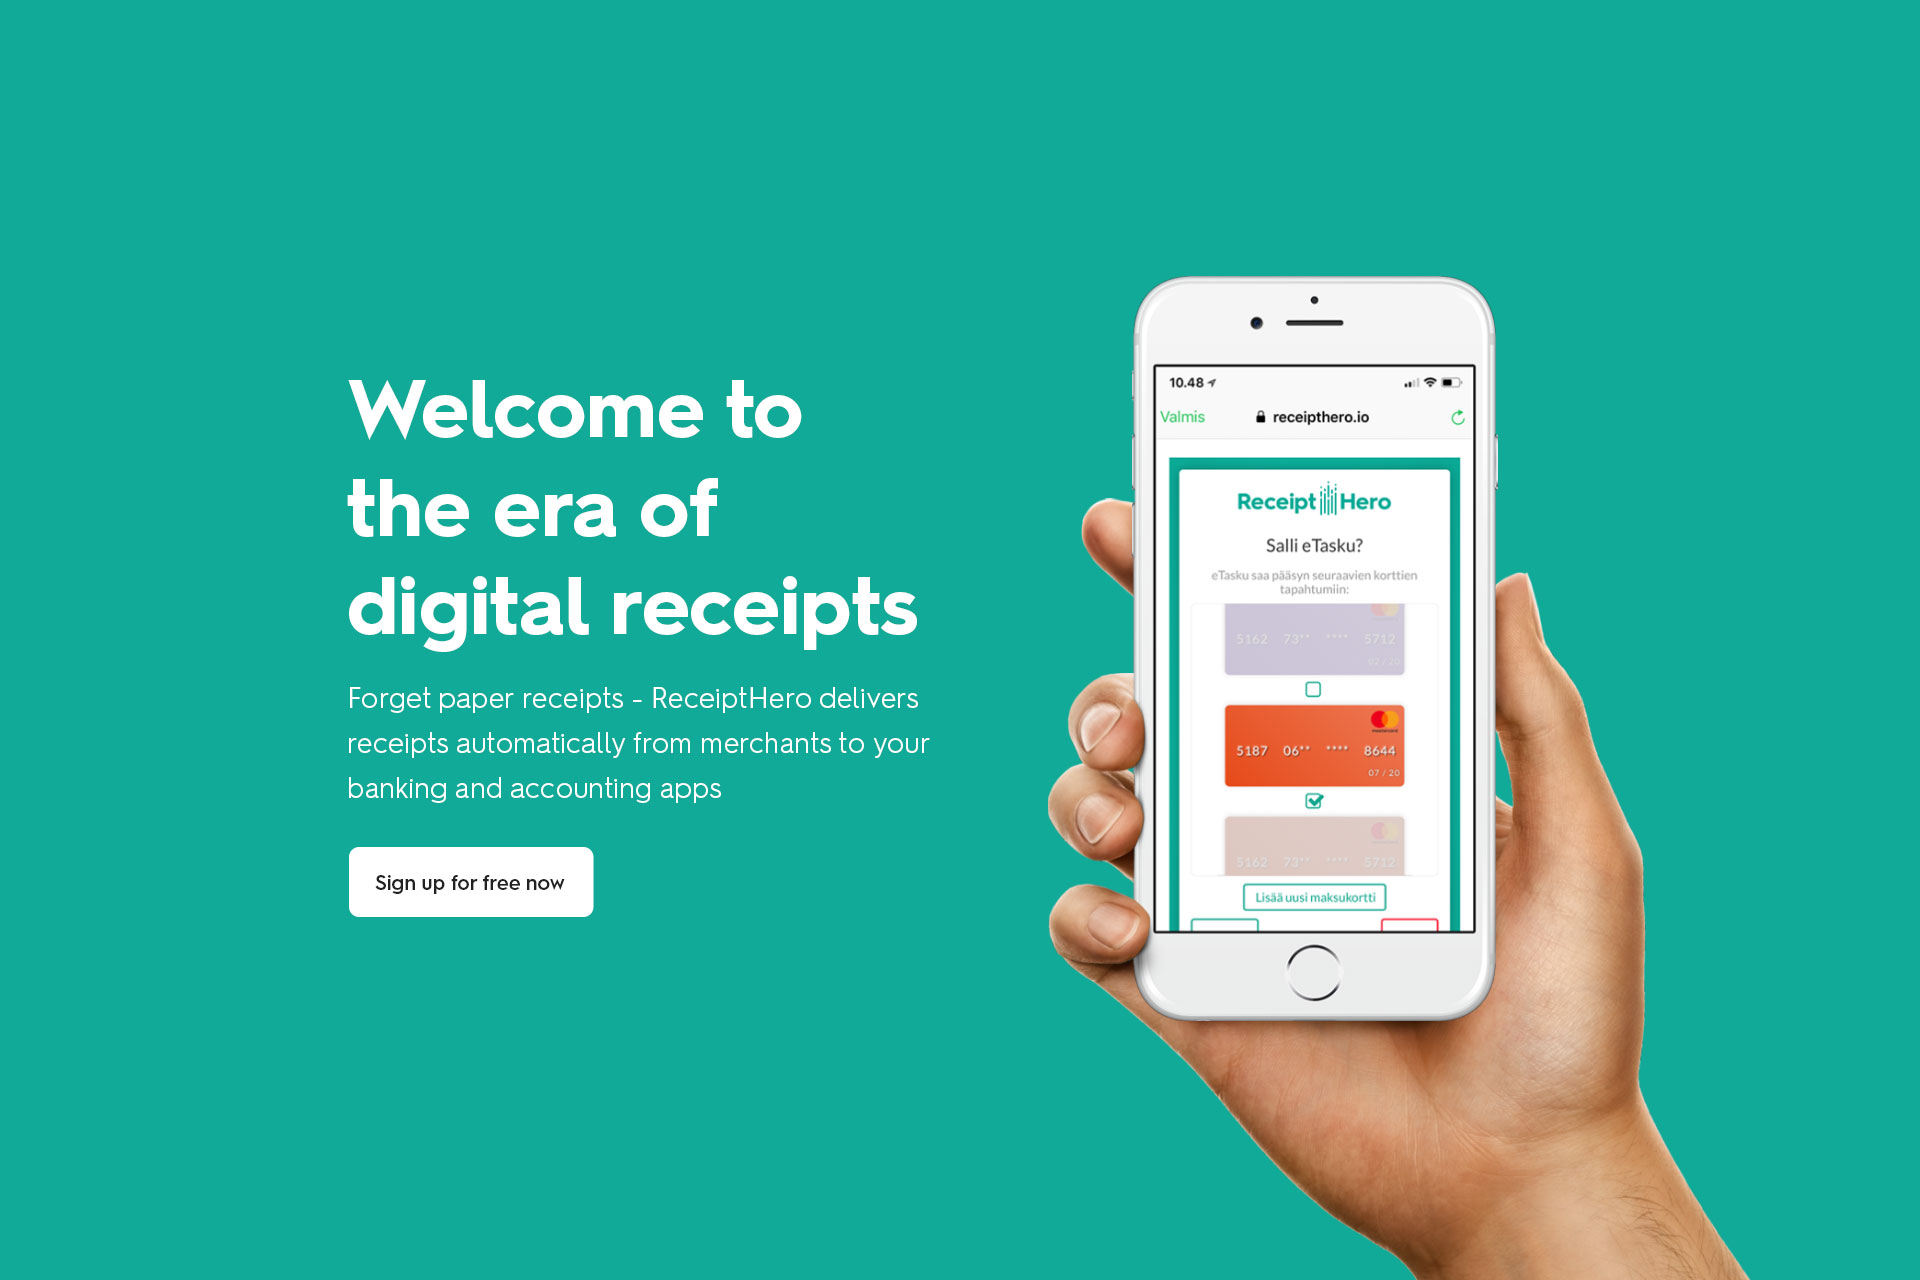 Receipt Hero visuaalinen ilme